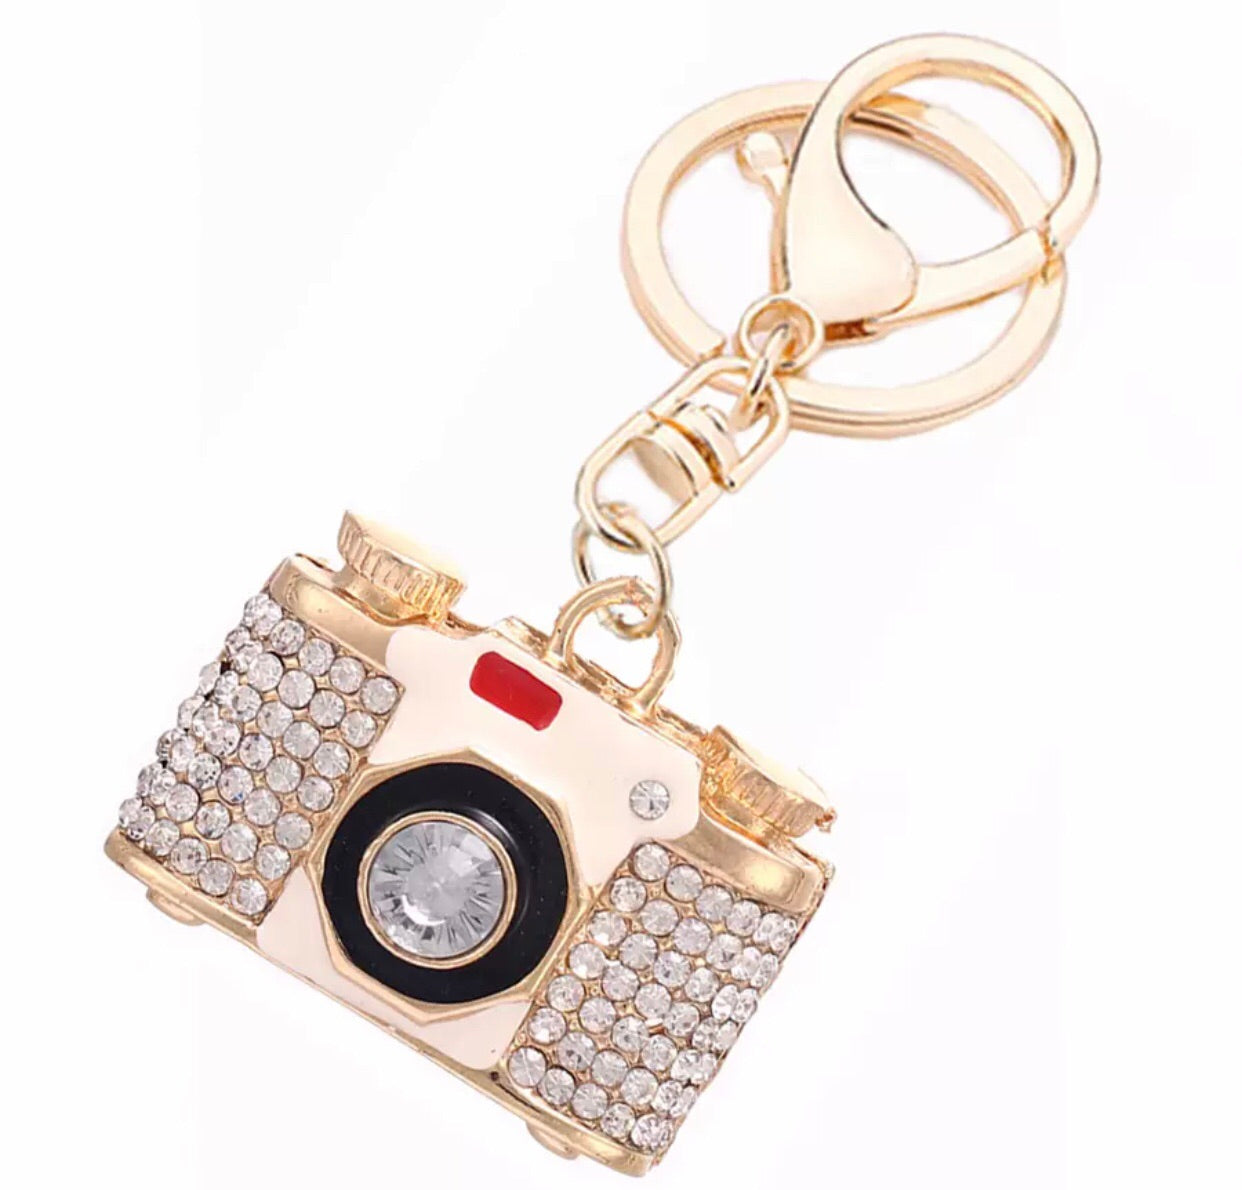 Camera 📸 bag charm keychain - Classy Pink Boutique